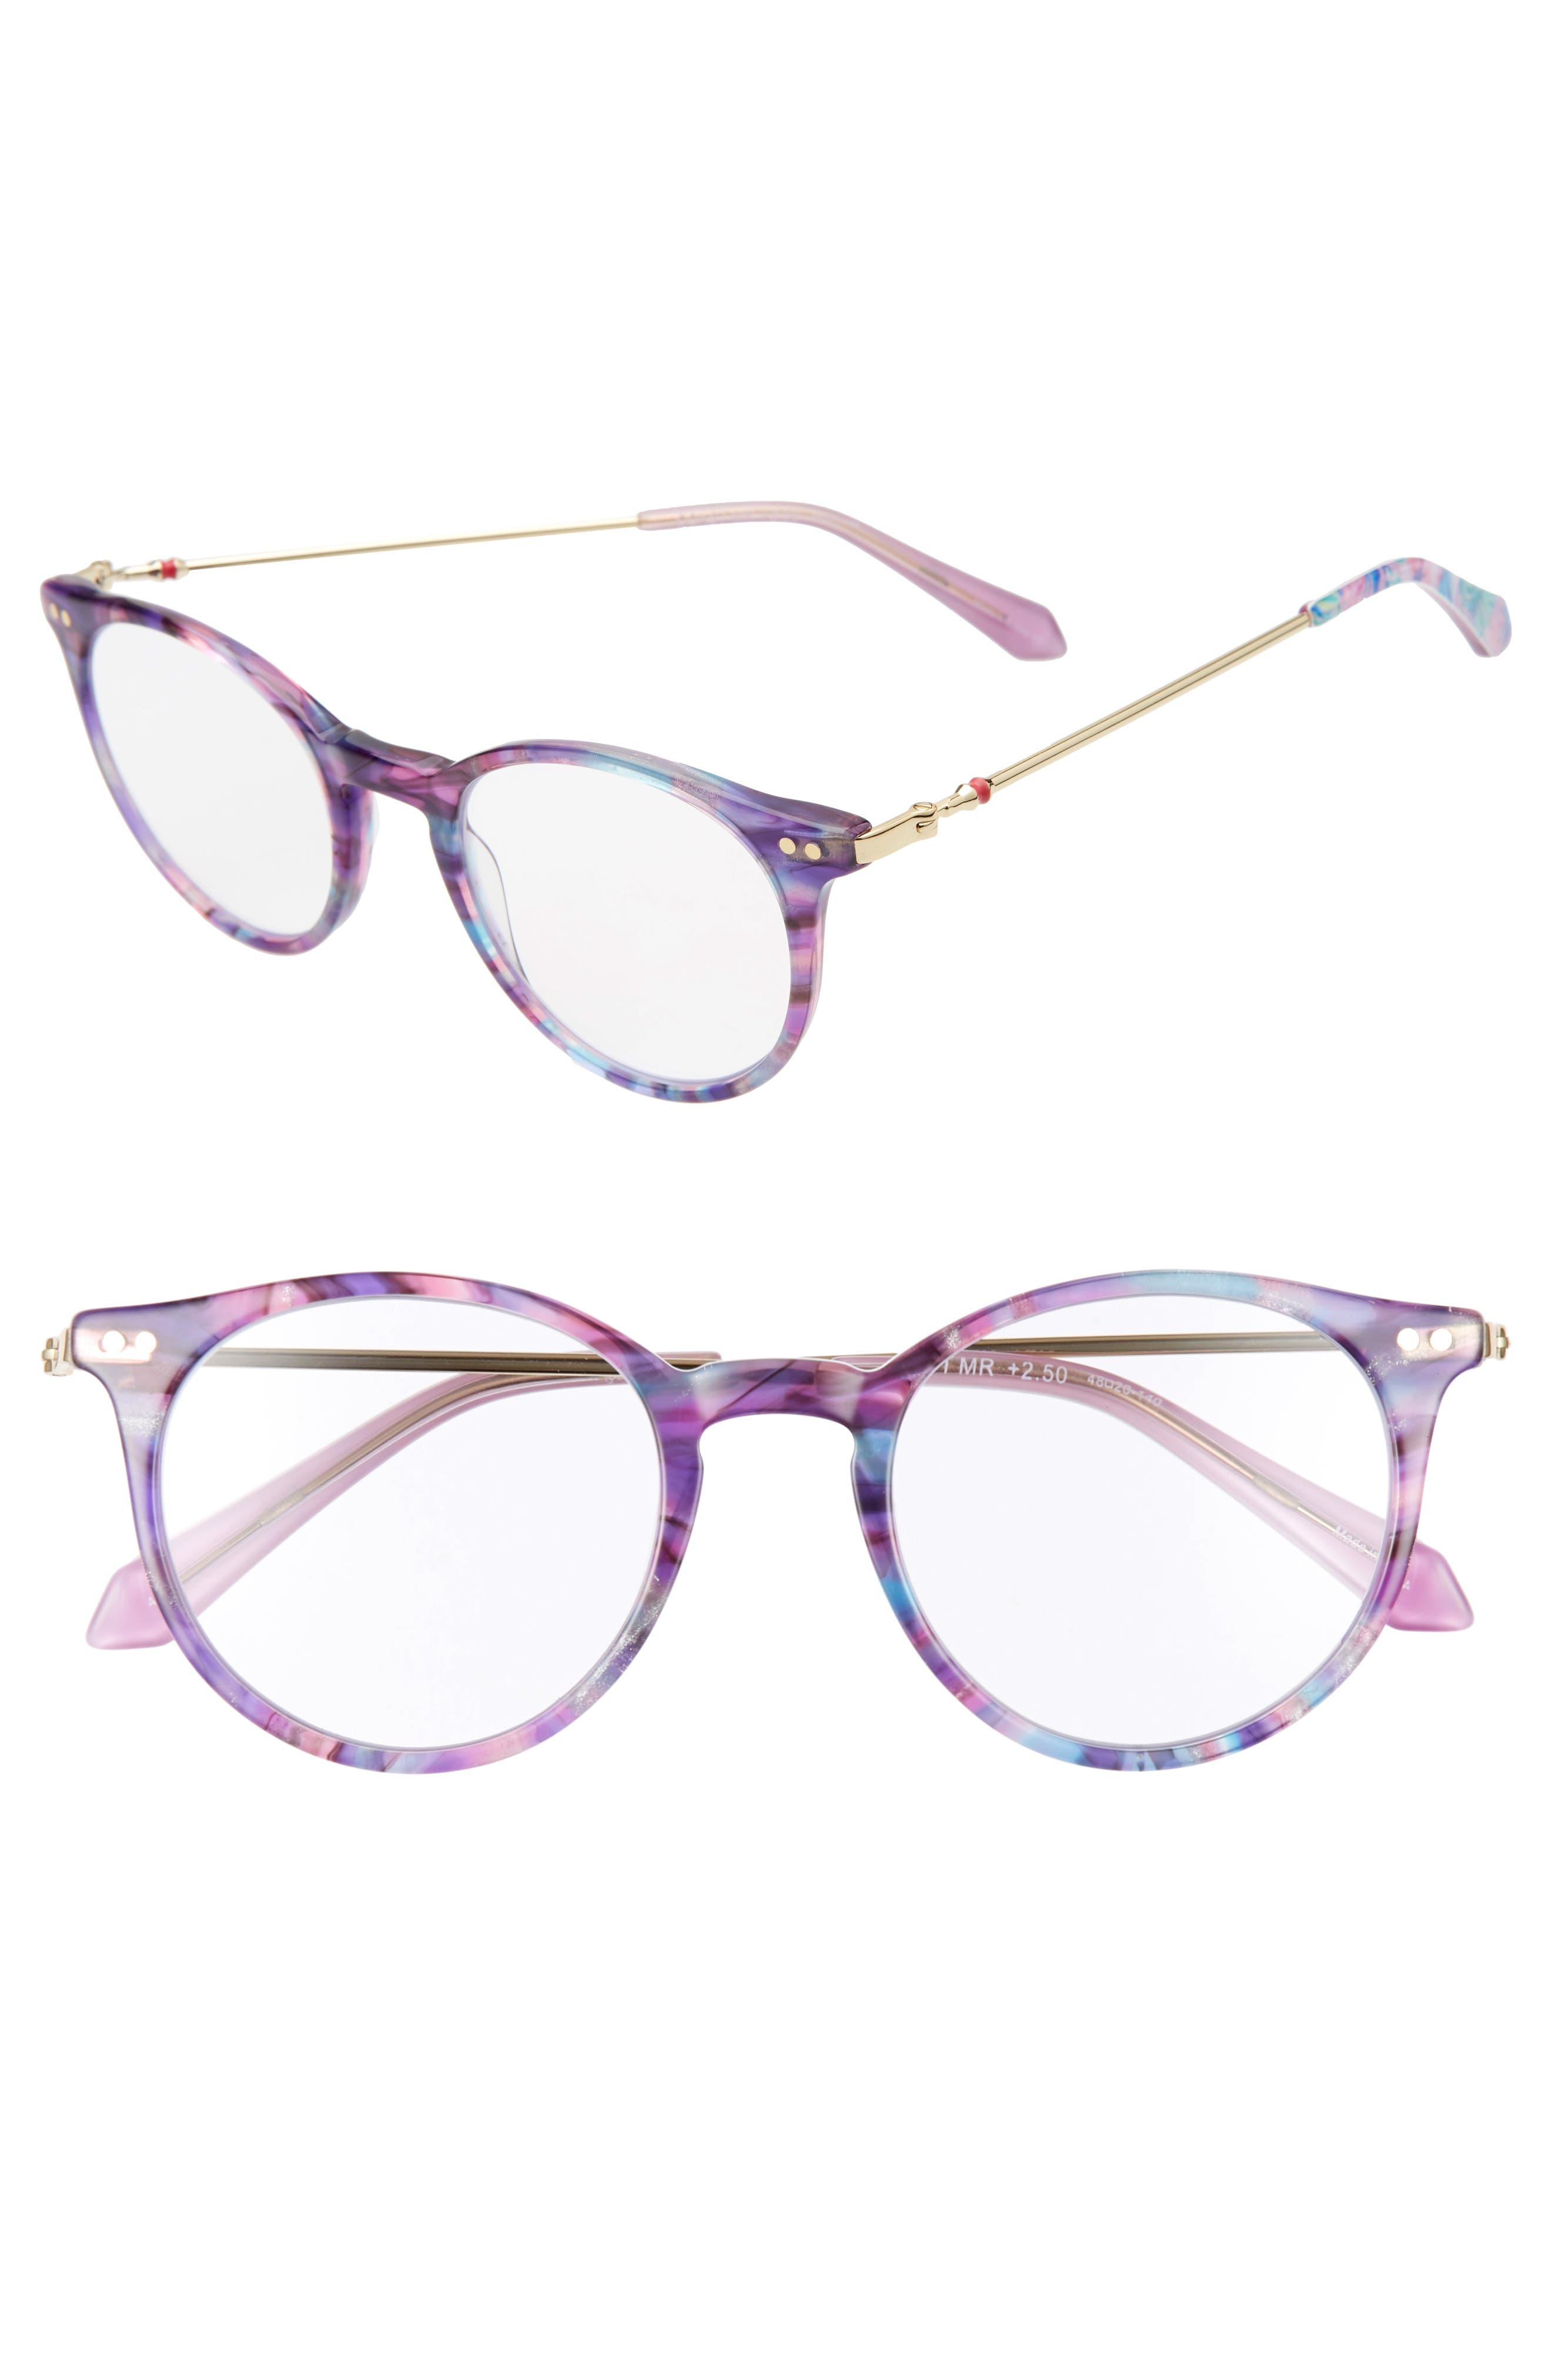 Grab a book and get ready for a day lounging seaside with these reading glasses in a classically chic silhouette. Style Name: Lilly Pulitzer Coast 48mm Round Reading Glasses. Style Number: 5984856. Available in stores.